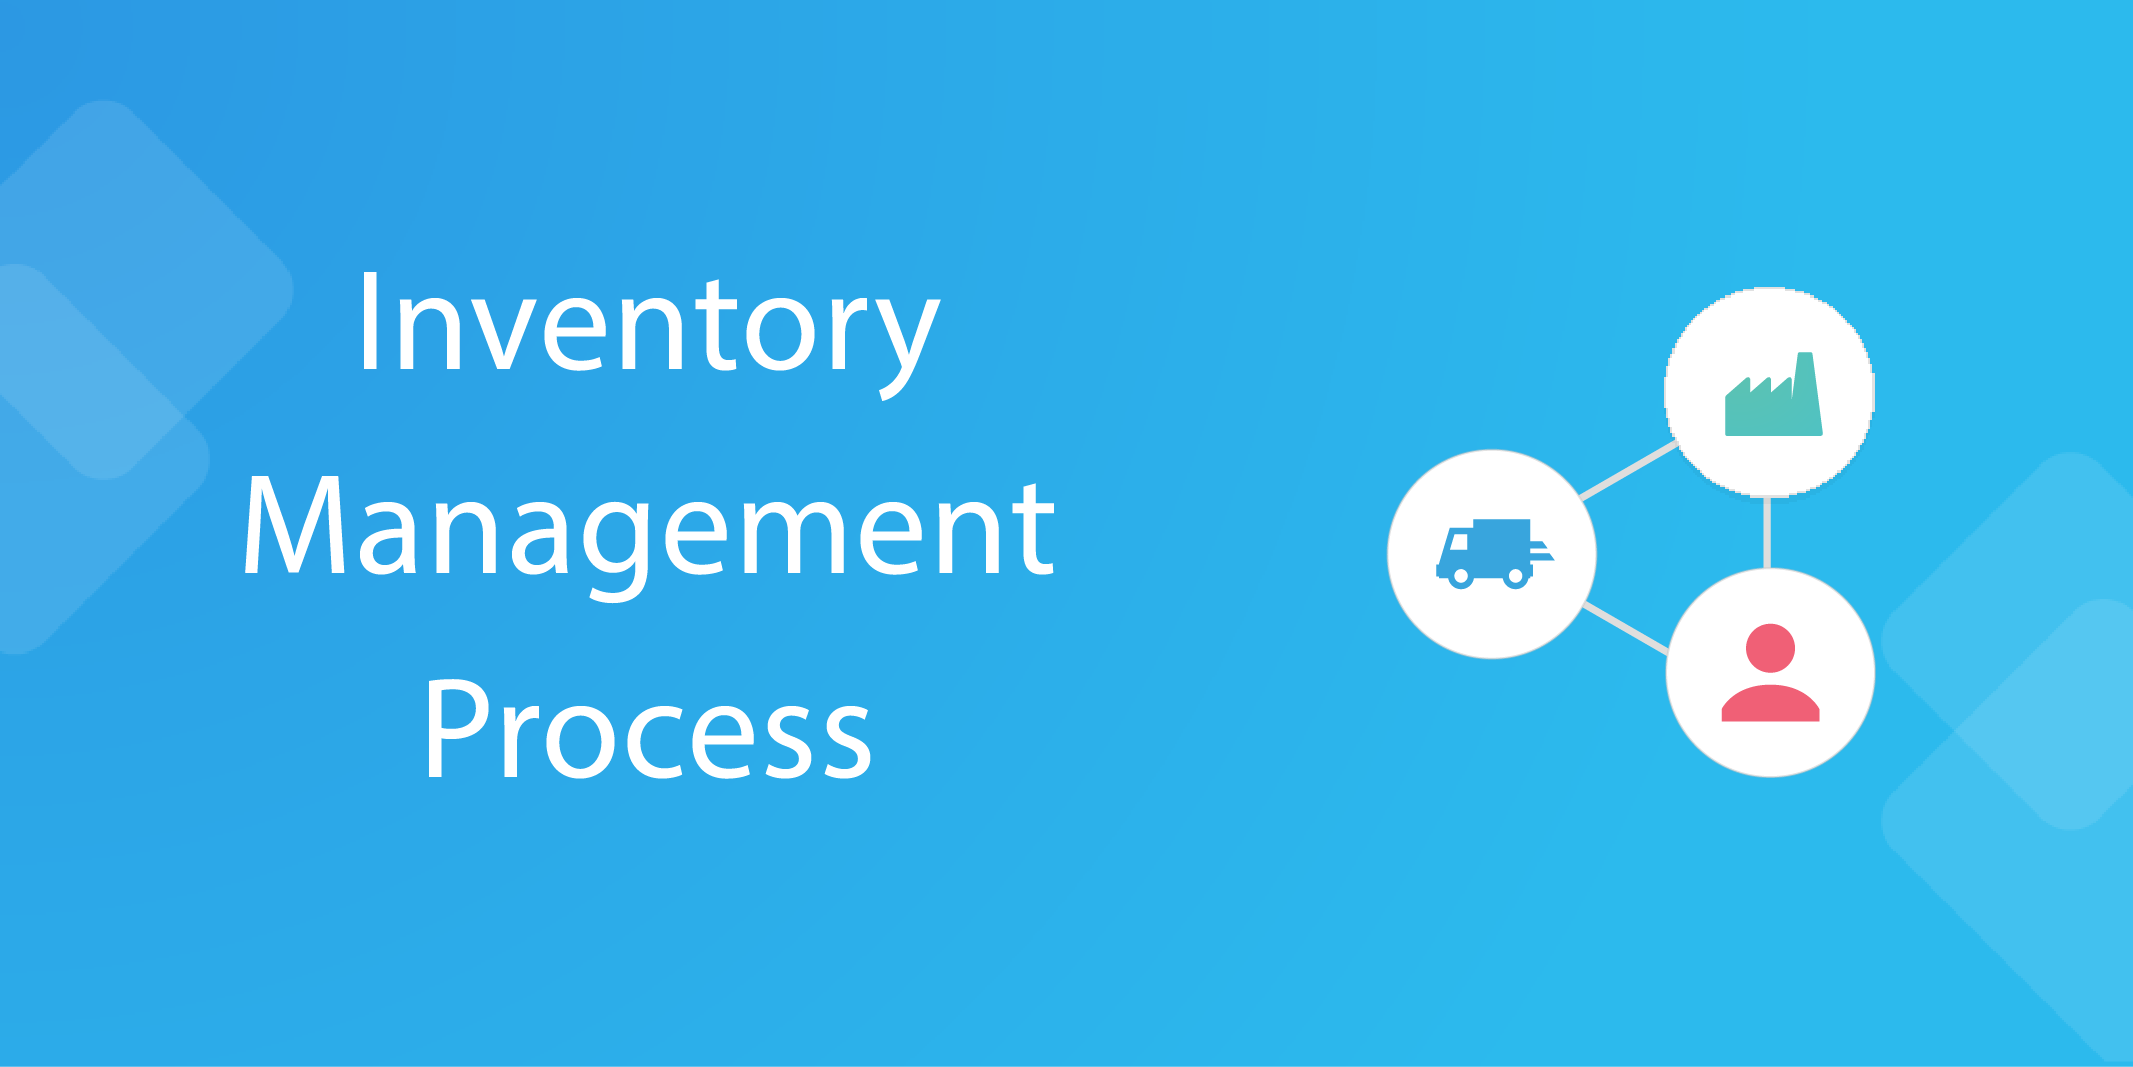 it processes Inventory Management Process